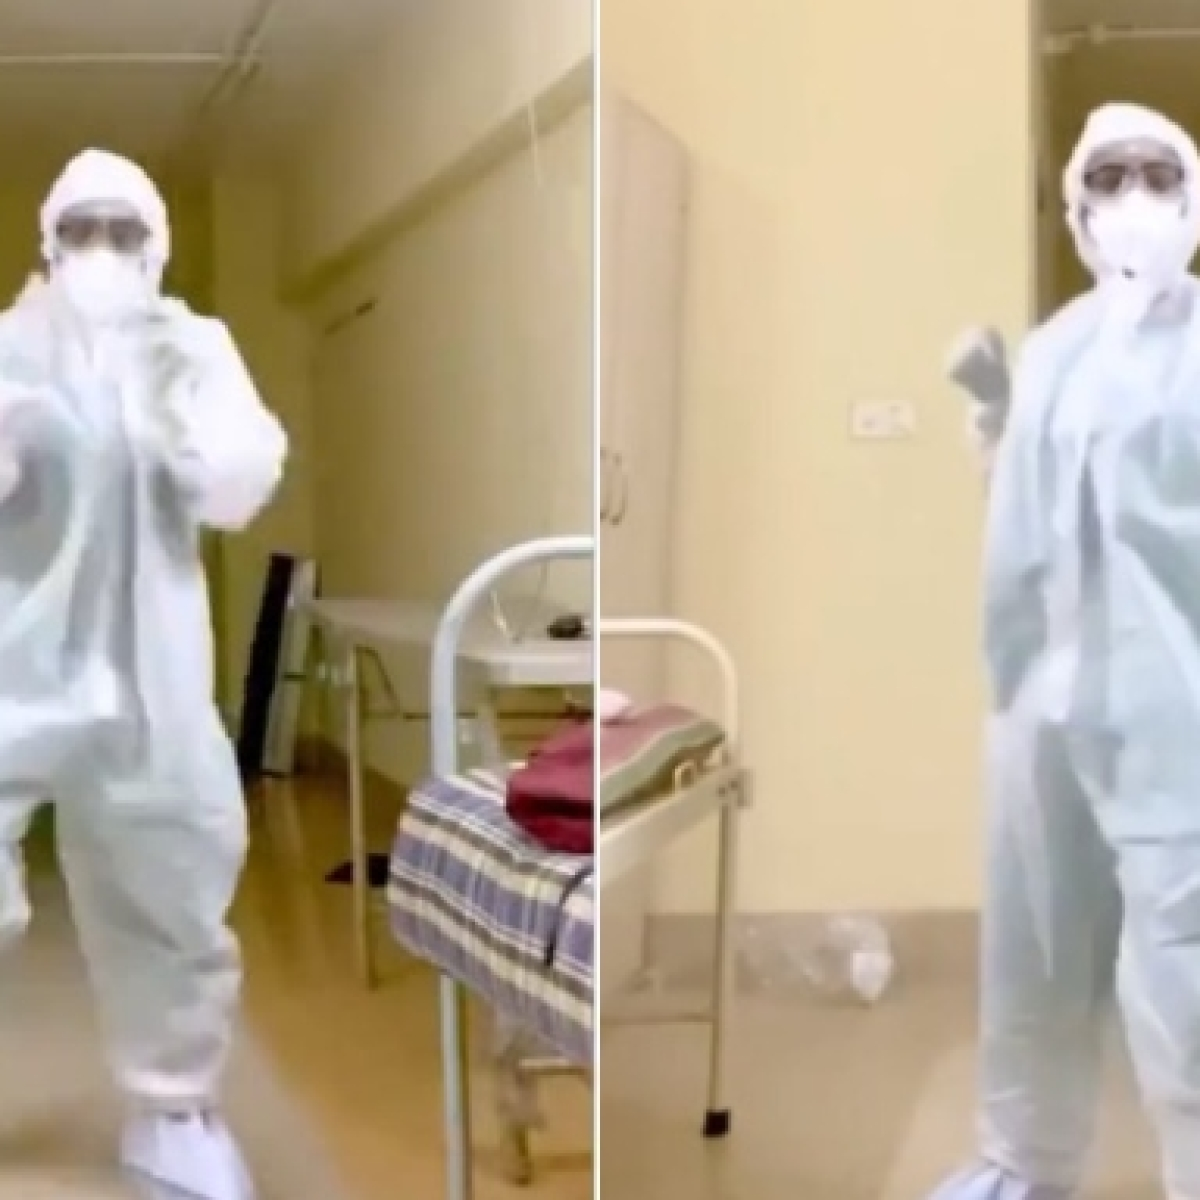 Watch: Mumbai doctor grooves to Nora Fatehi's 'Garmi' in PPE suit; video goes viral